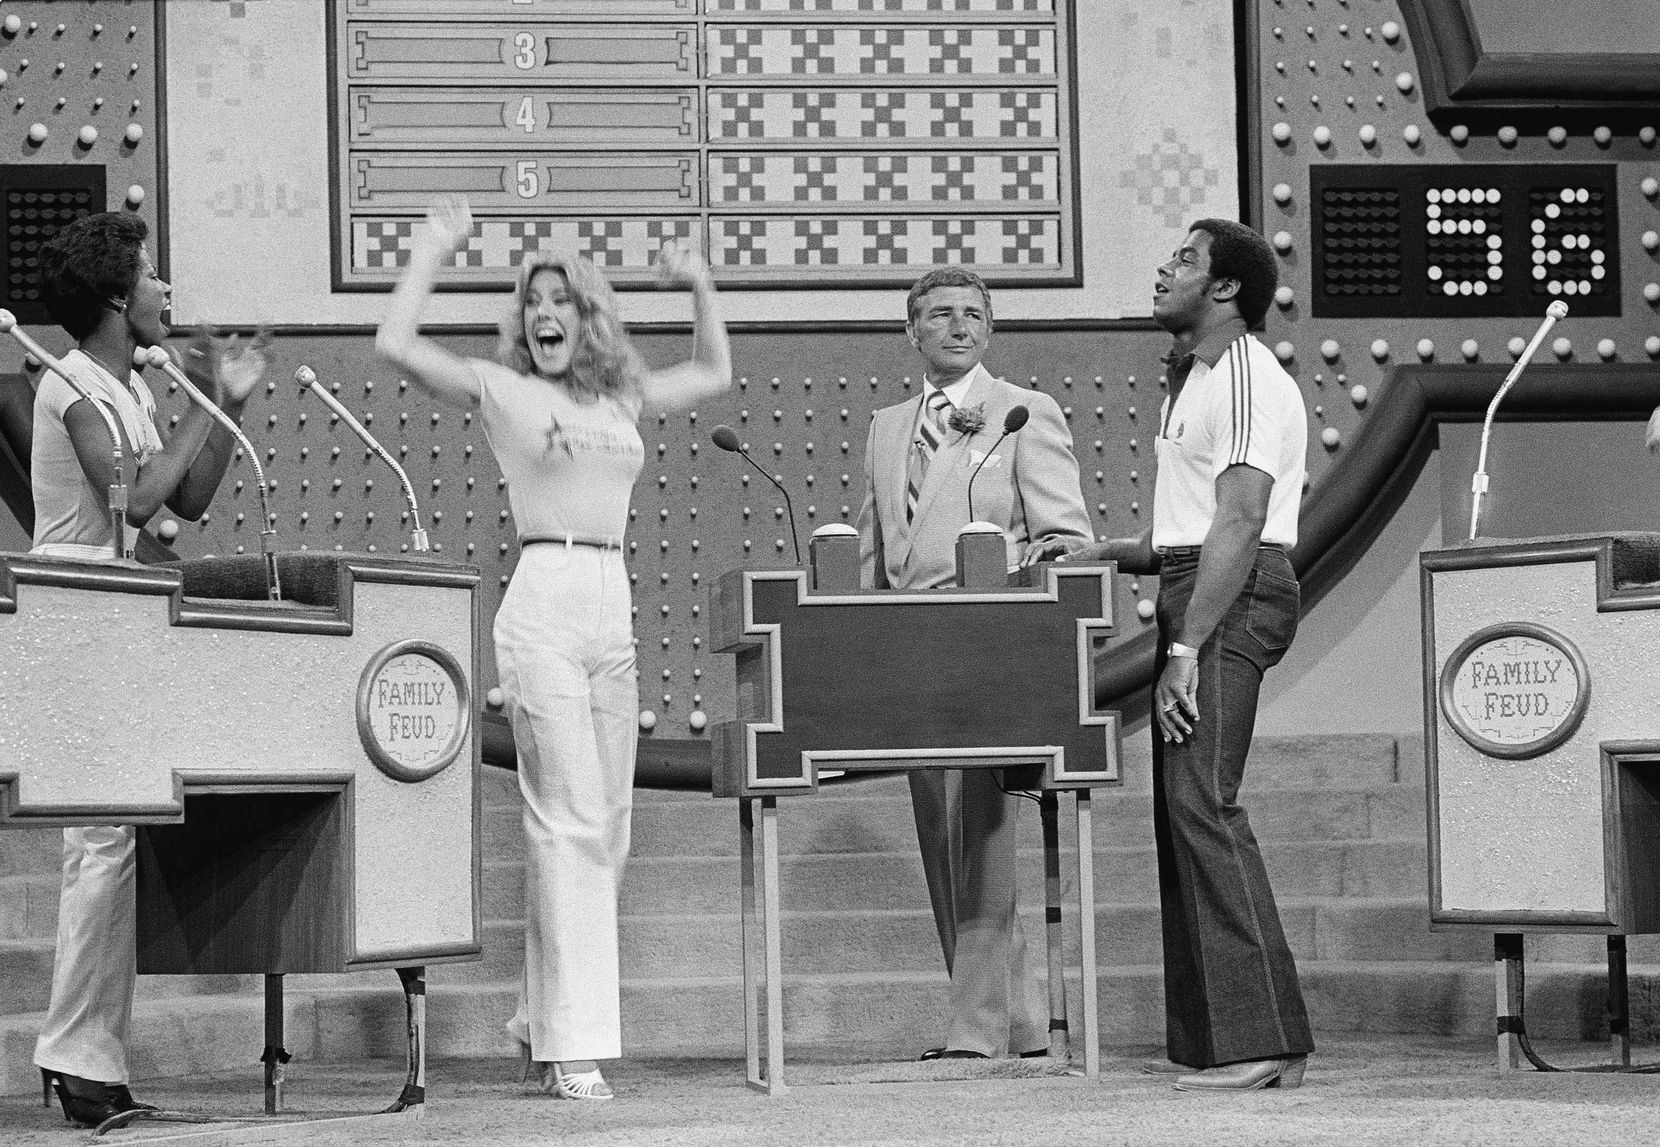 In this June 25, 1980 file photo, host Richard Dawson, center, watches while Dallas Cowboys running back Tony Dorsett, right, grimaces and Cowboys cheerleader Suzette Scholz-Derrick waves happily.